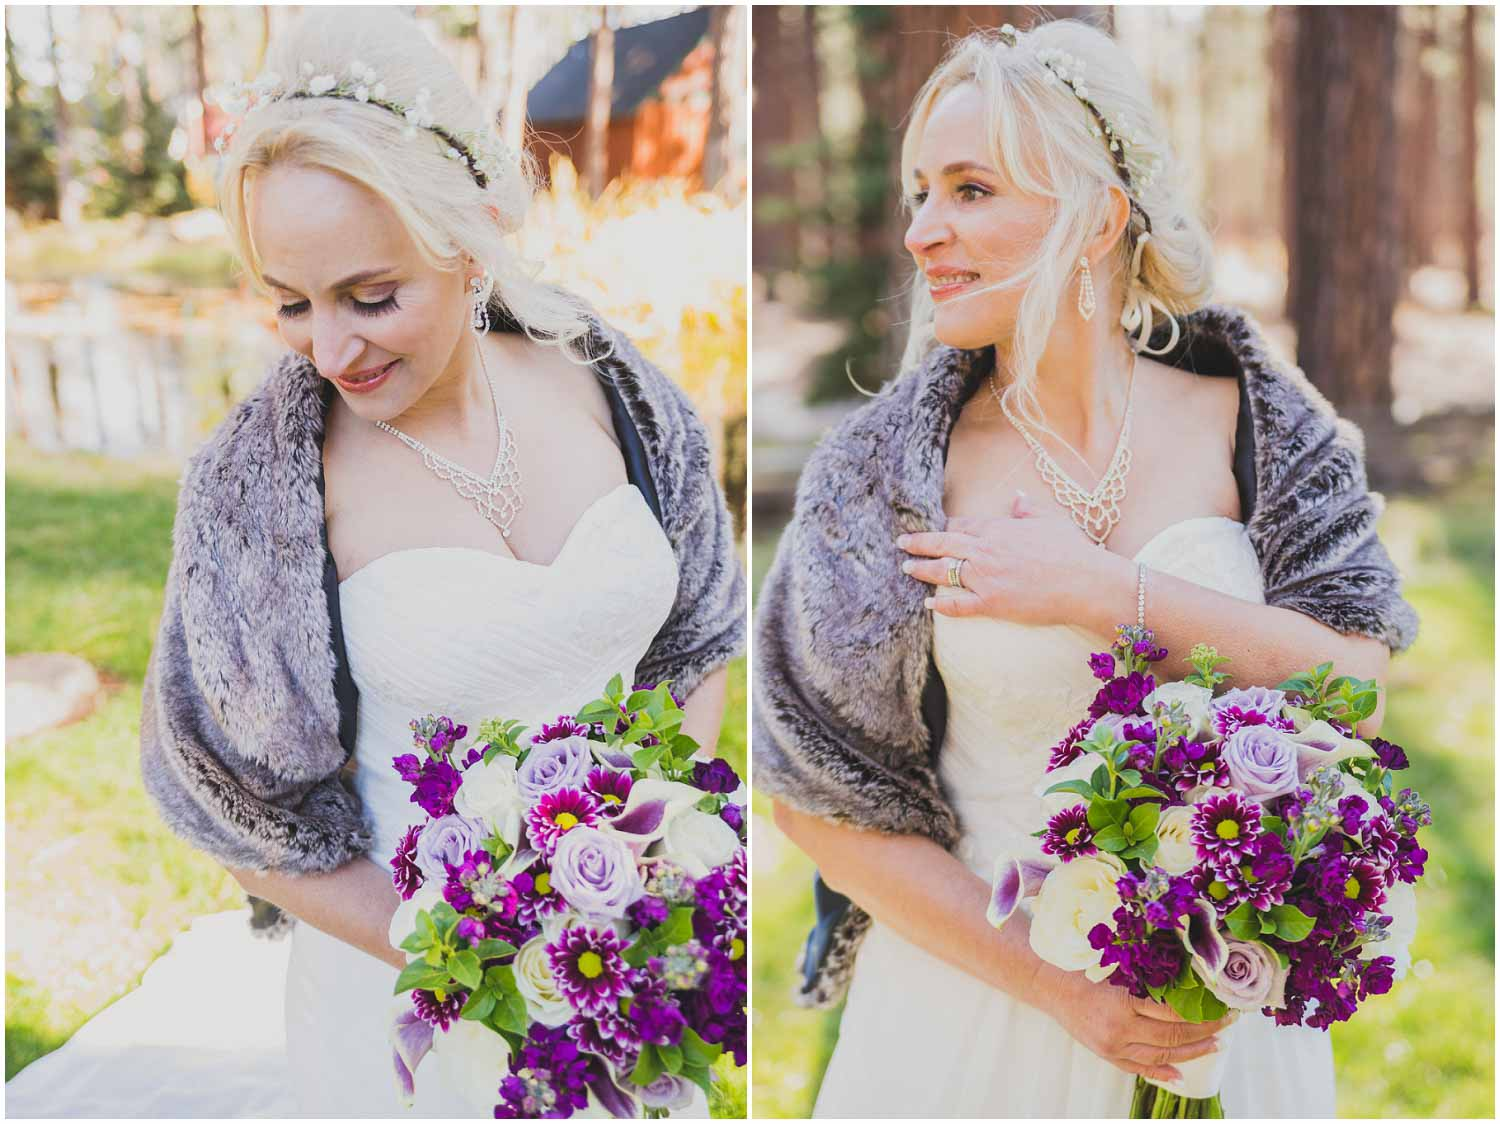 beautiful bride in white dress and fur shawl with purple bouquet